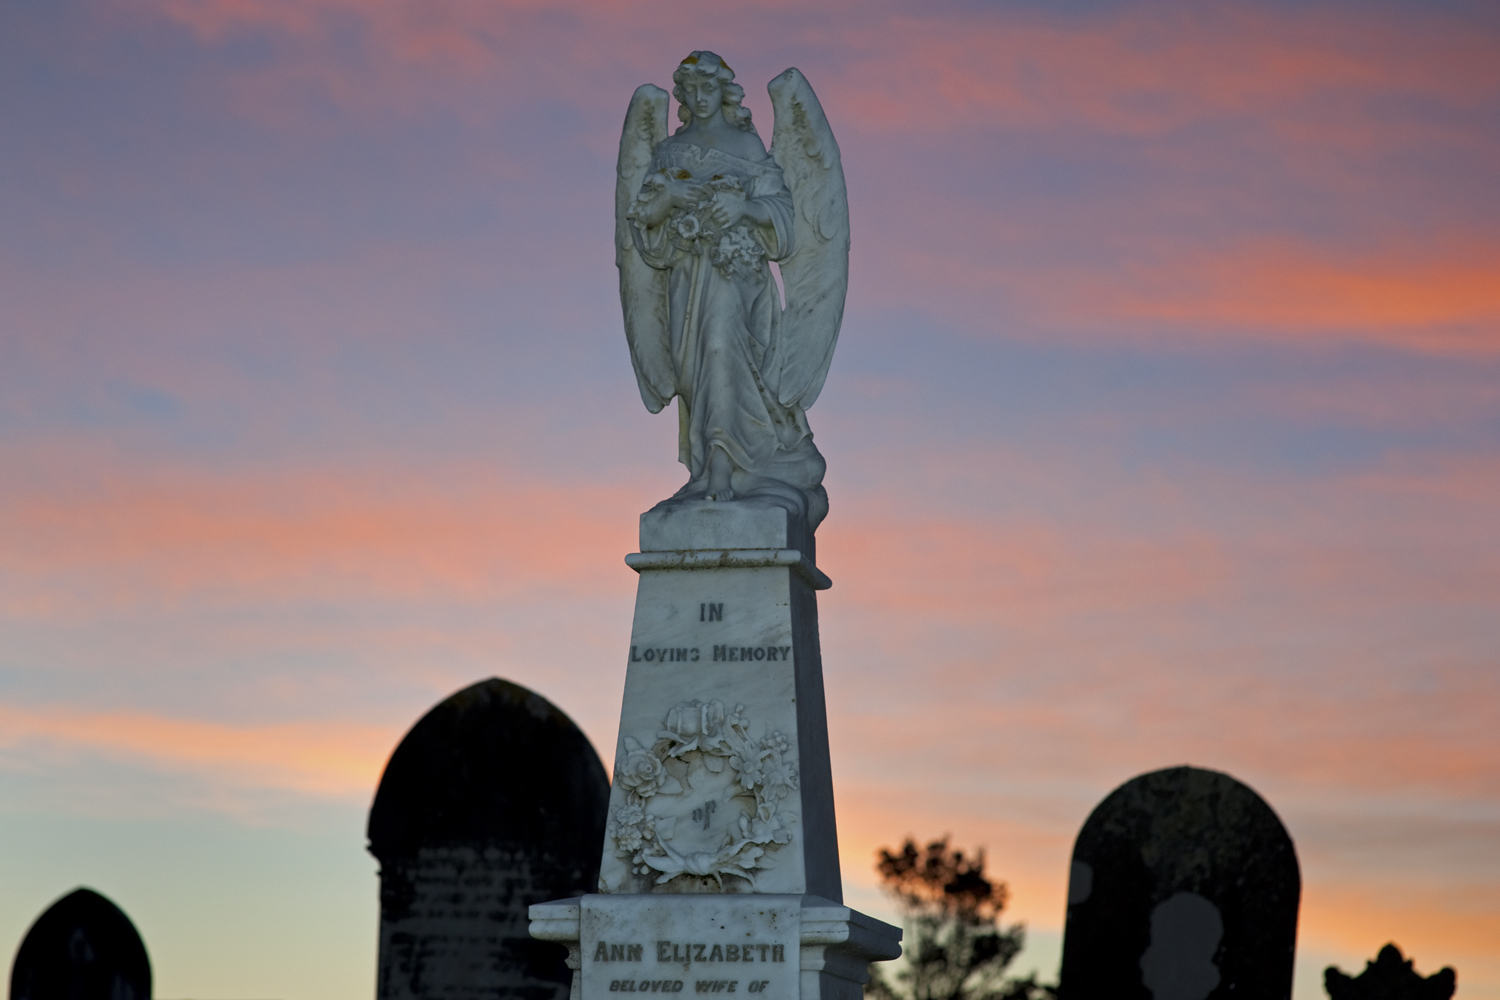 Angel at sunset, Karoro Cemetery, Greymouth